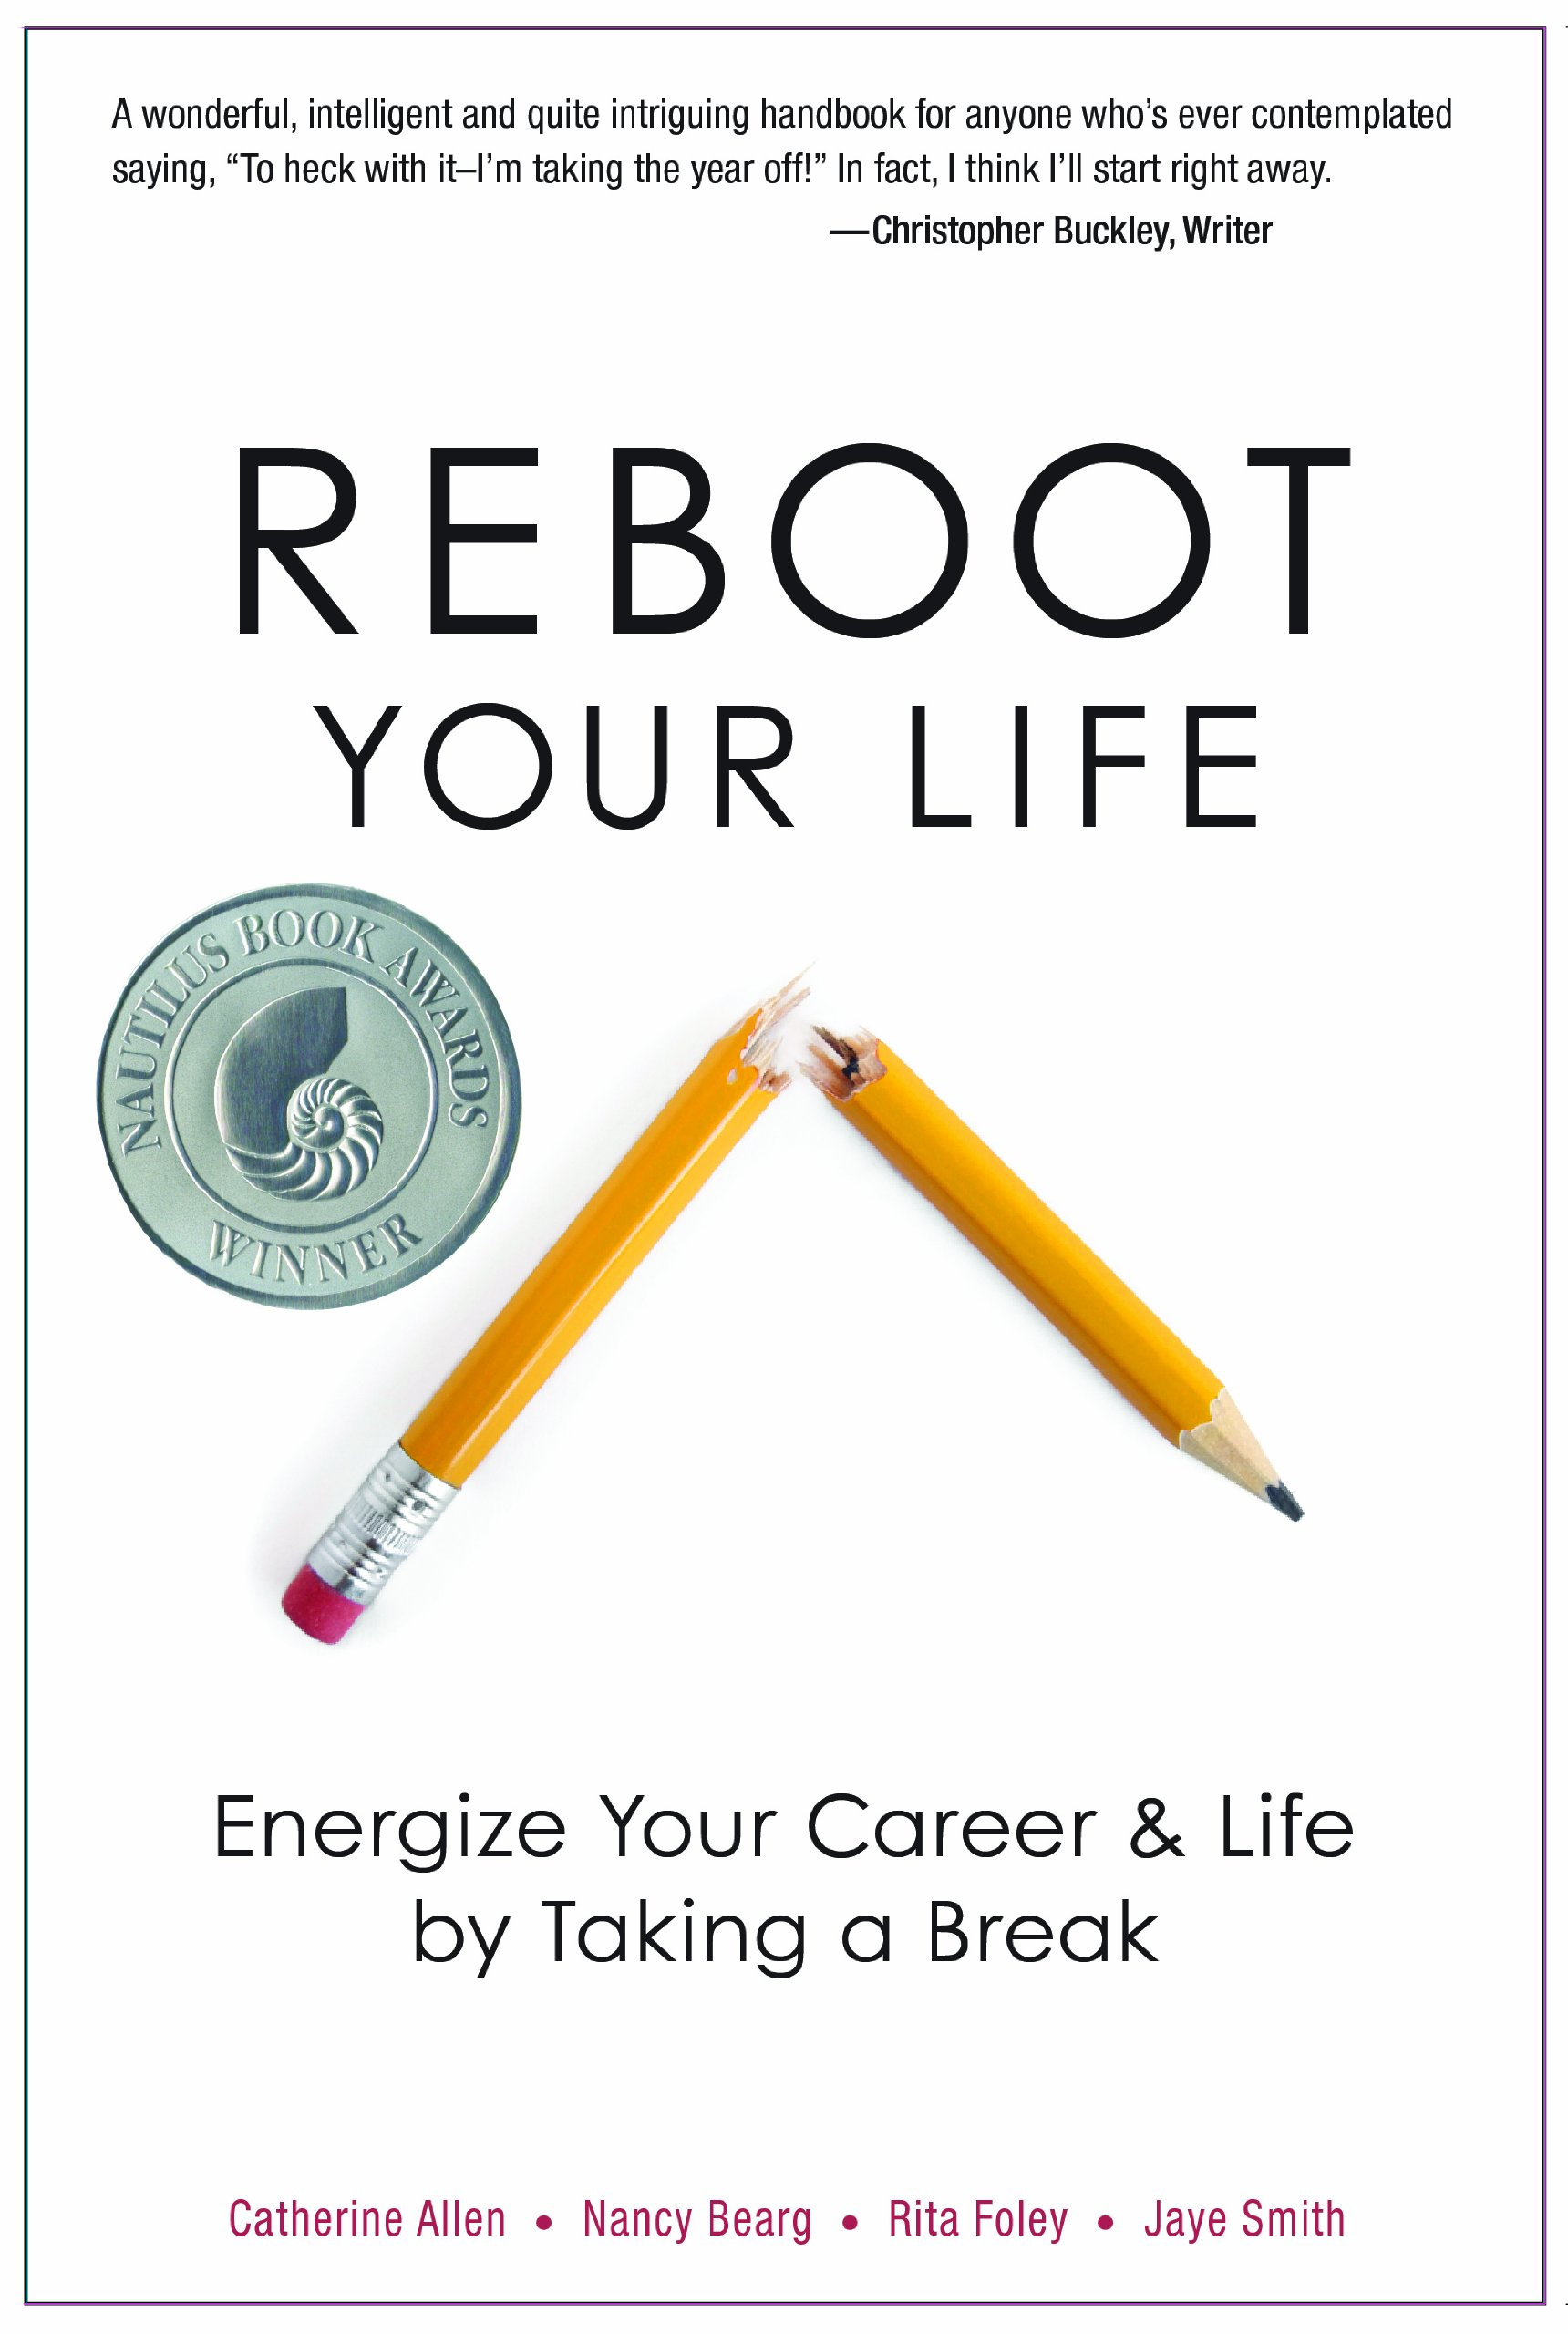 Amazon.com: Reboot Your Life: Energize Your Career and Life by Taking a  Break (9780825305641): Catherine Allen, Nancy Bearg, Rita Foley, Jaye  Smith: Books